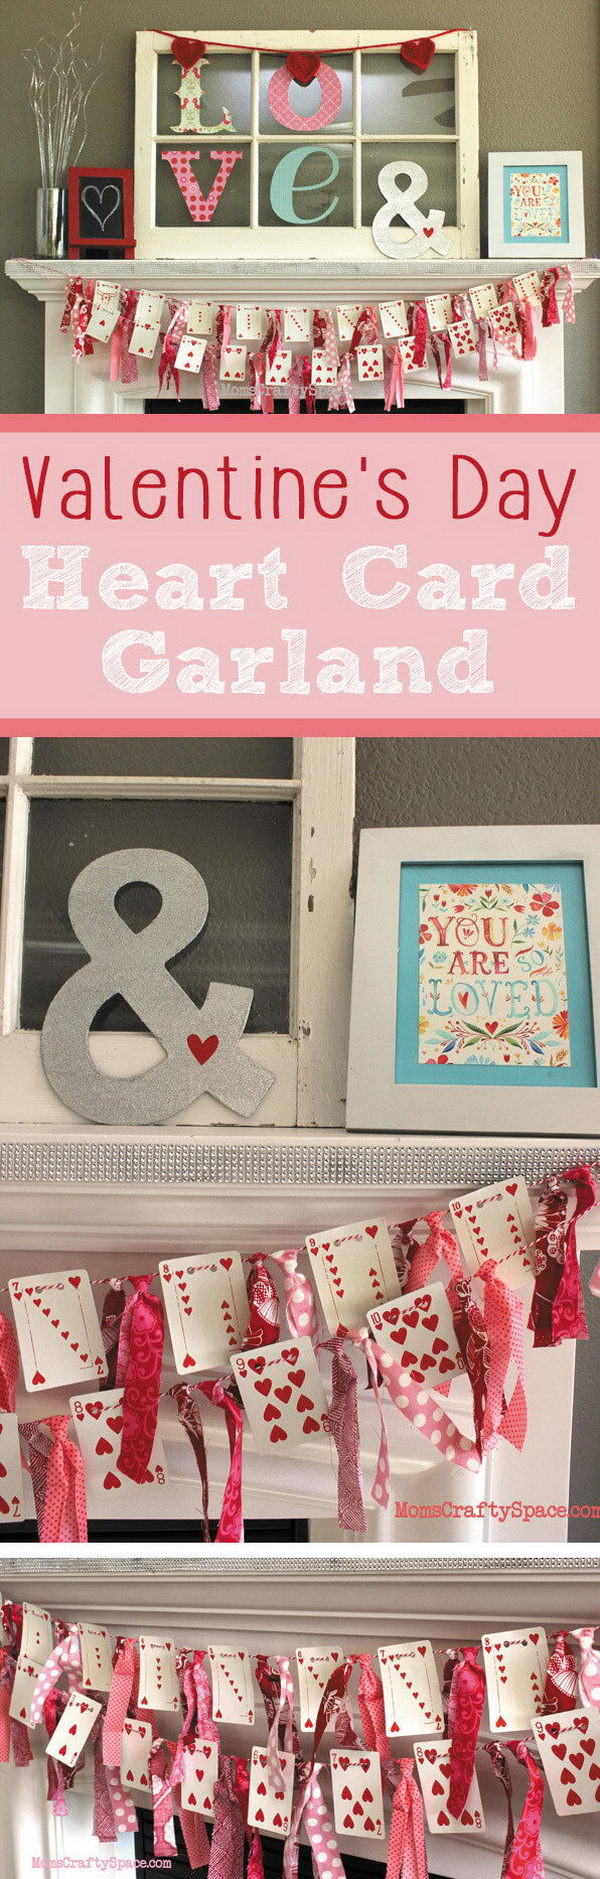 DIY Heart Cards Garland.